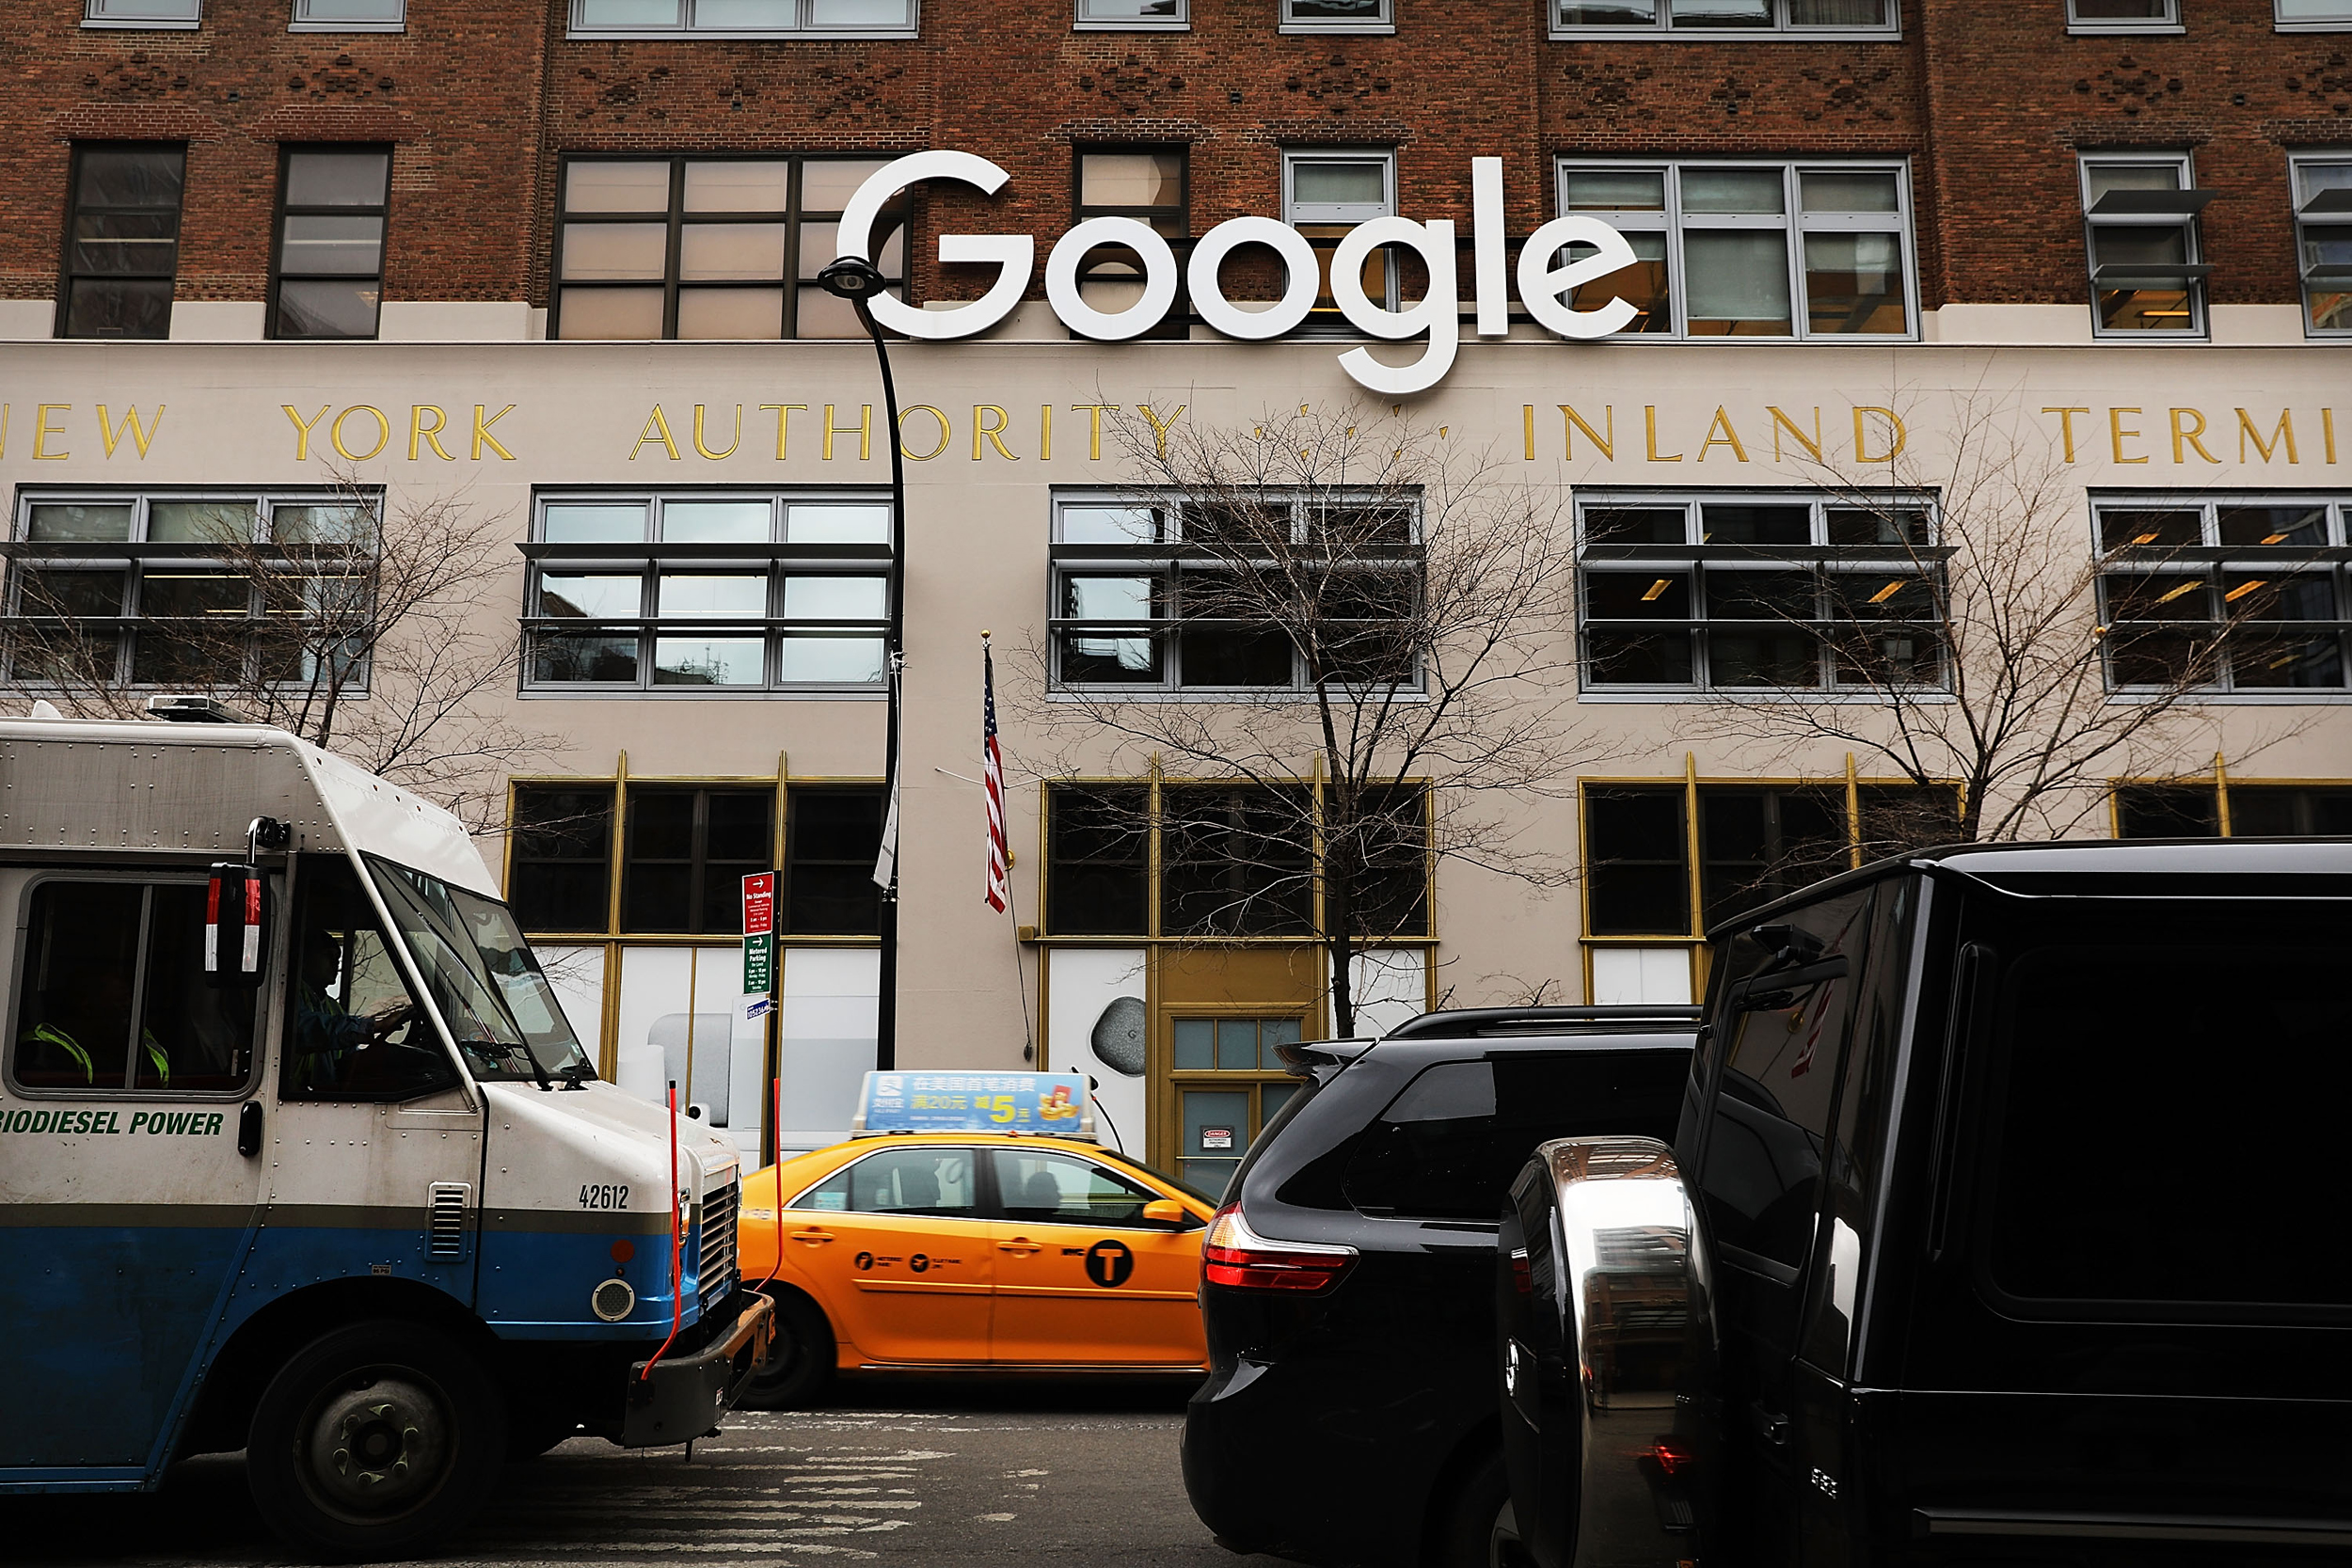 Google announces new security flaw, closes social network early